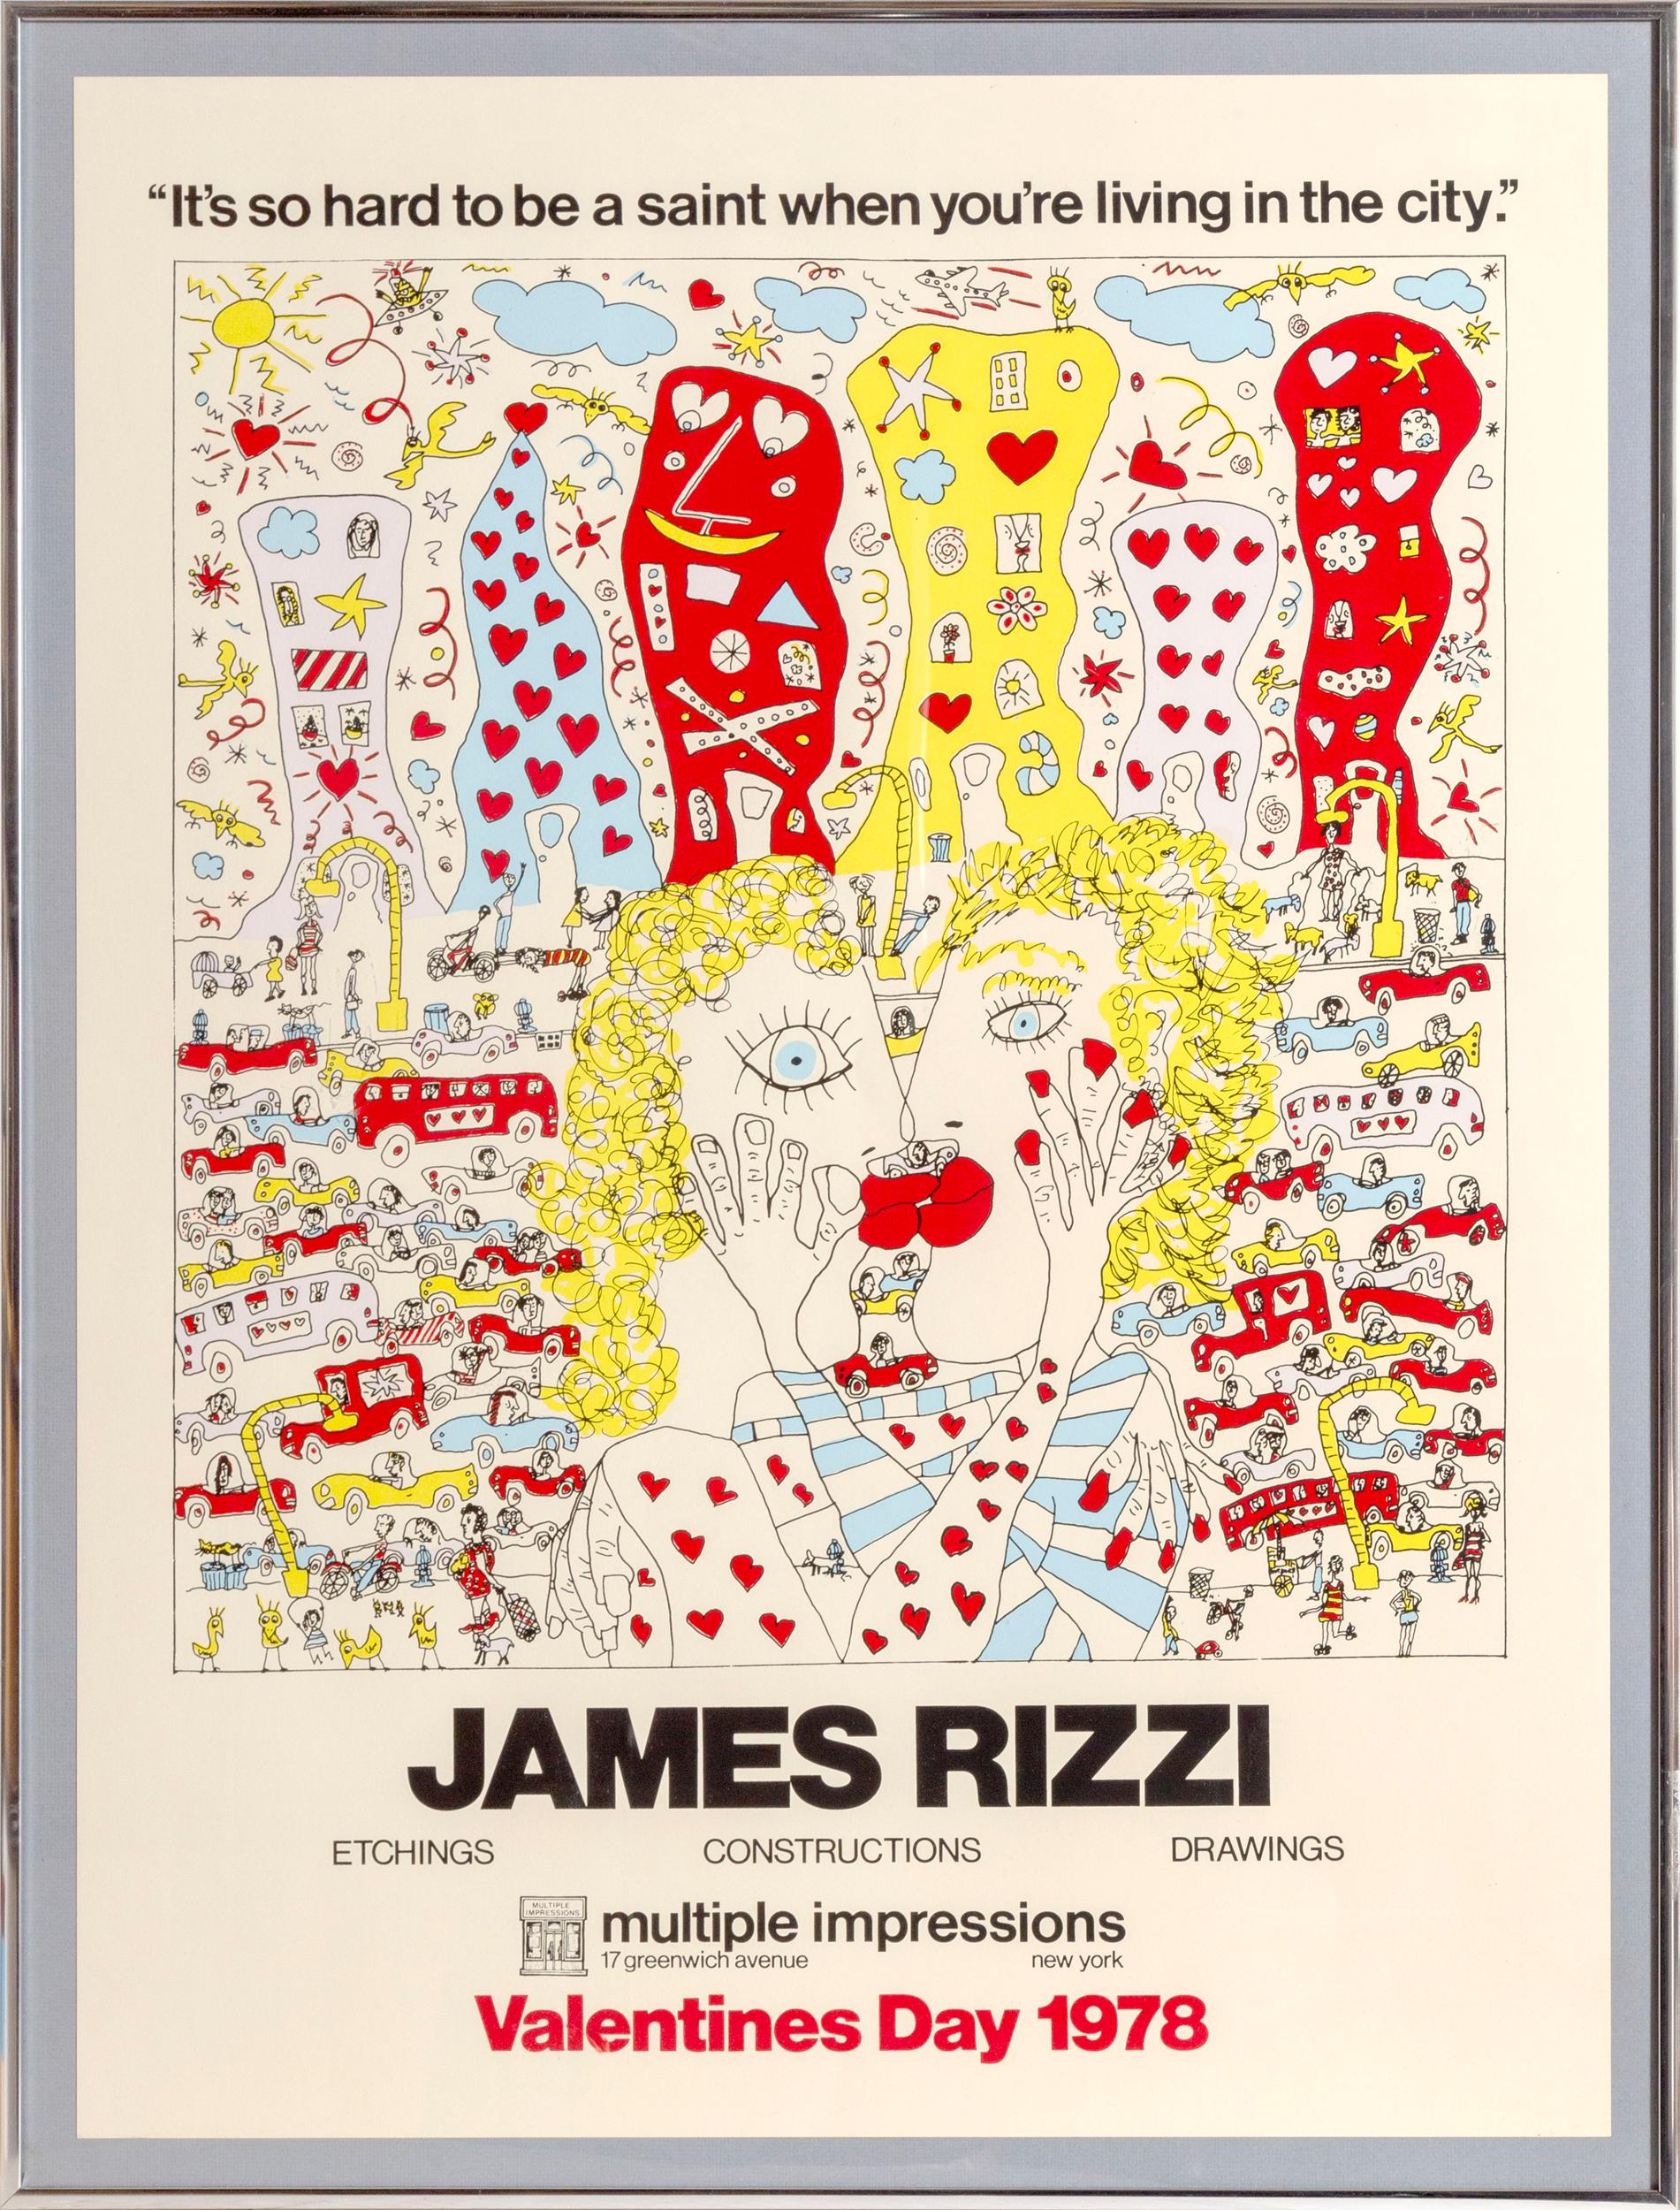 James Rizzi, It's So Hard to be a Saint When You're Living in the City (Valentines Day), Lithograph Poster